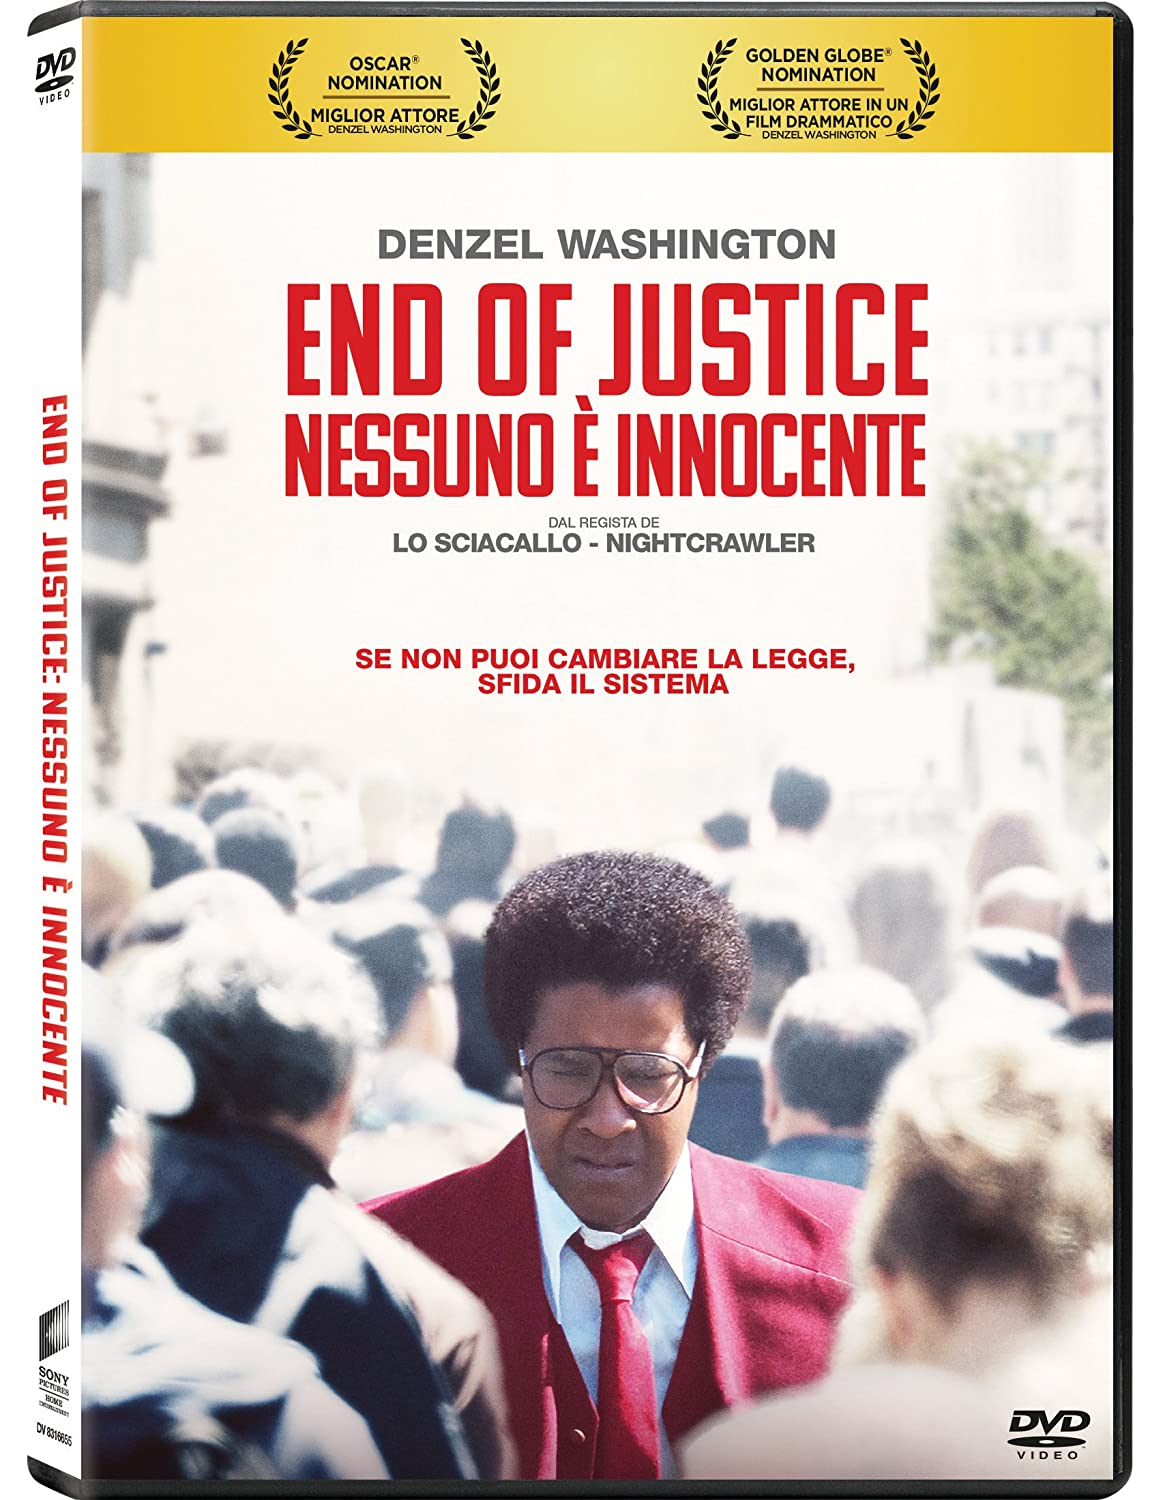 END OF JUSTICE: NESSUNO E' INNOCENTE (DVD)